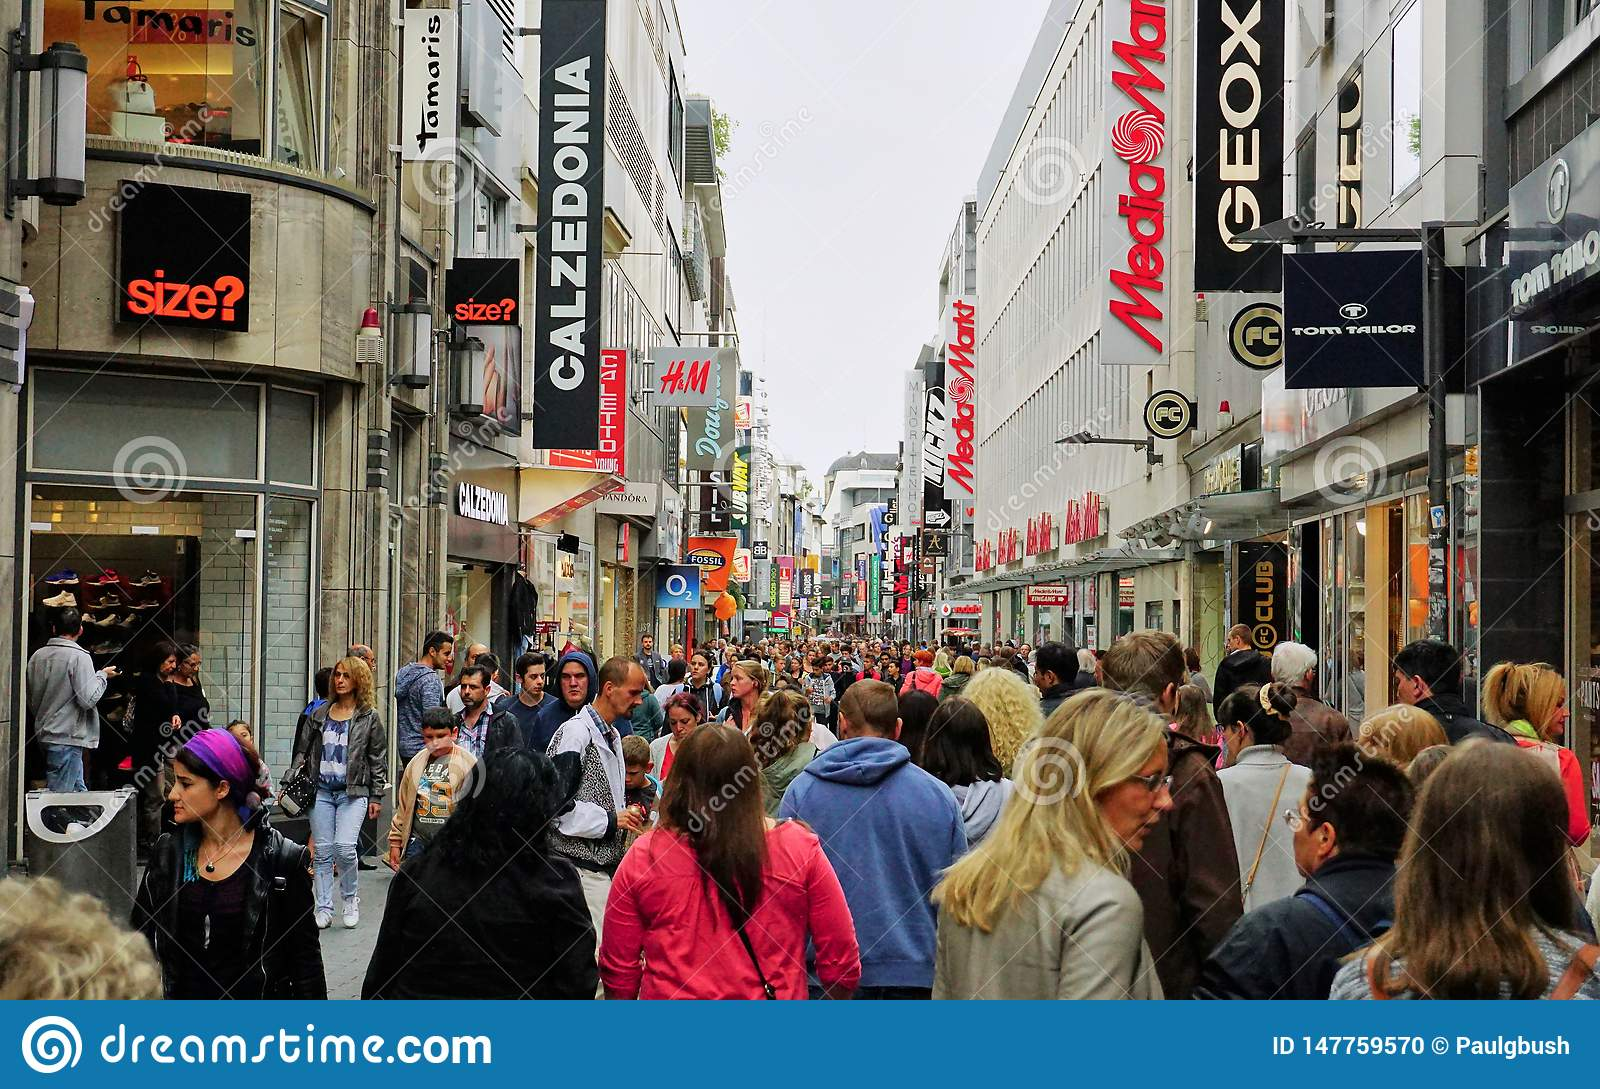 Diverse crowd fills the main shopping district street in Cologne, Germany